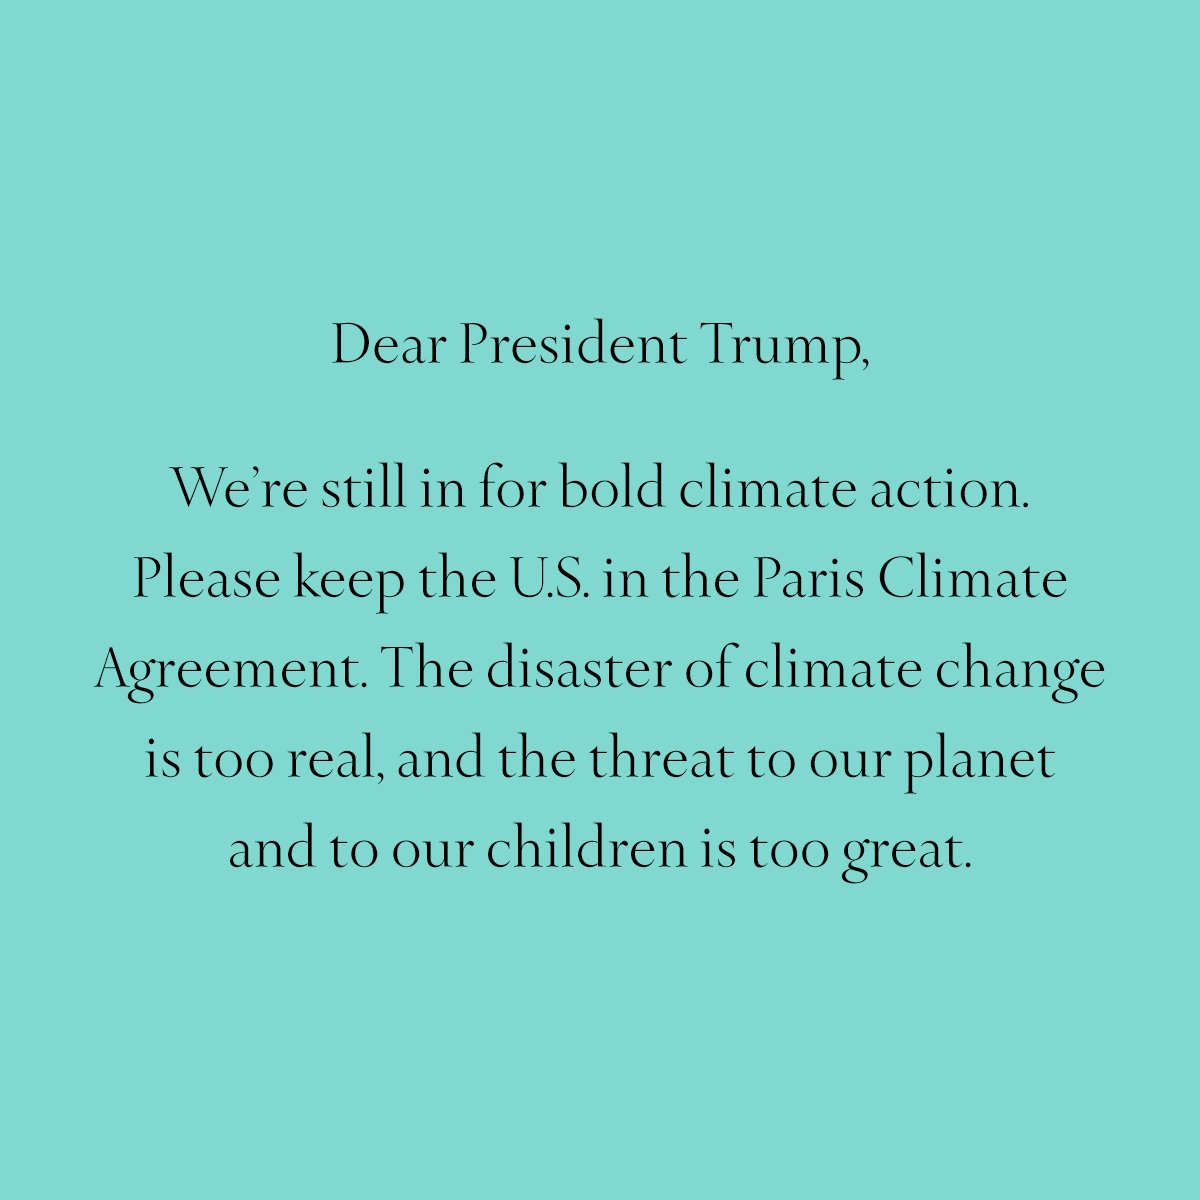 Tiffany strongly supports keeping the U.S. in the #ParisAgreement. https://t.co/oGC4wdz4aQ